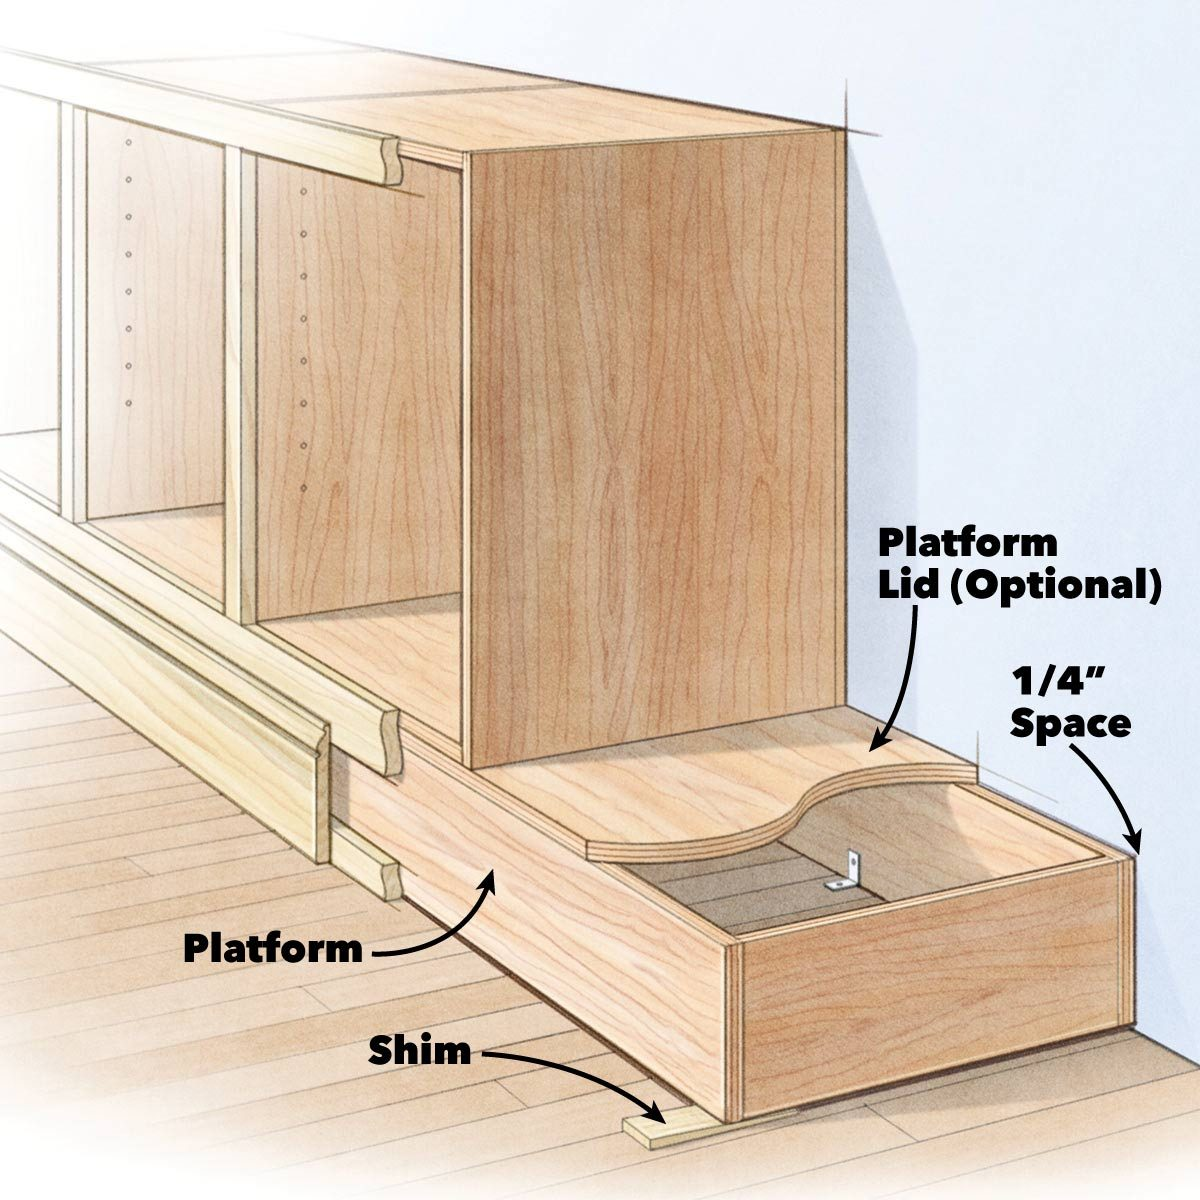 Astonishing Shortcuts For Custom Built Cabinets And Diy Built Ins Pdpeps Interior Chair Design Pdpepsorg